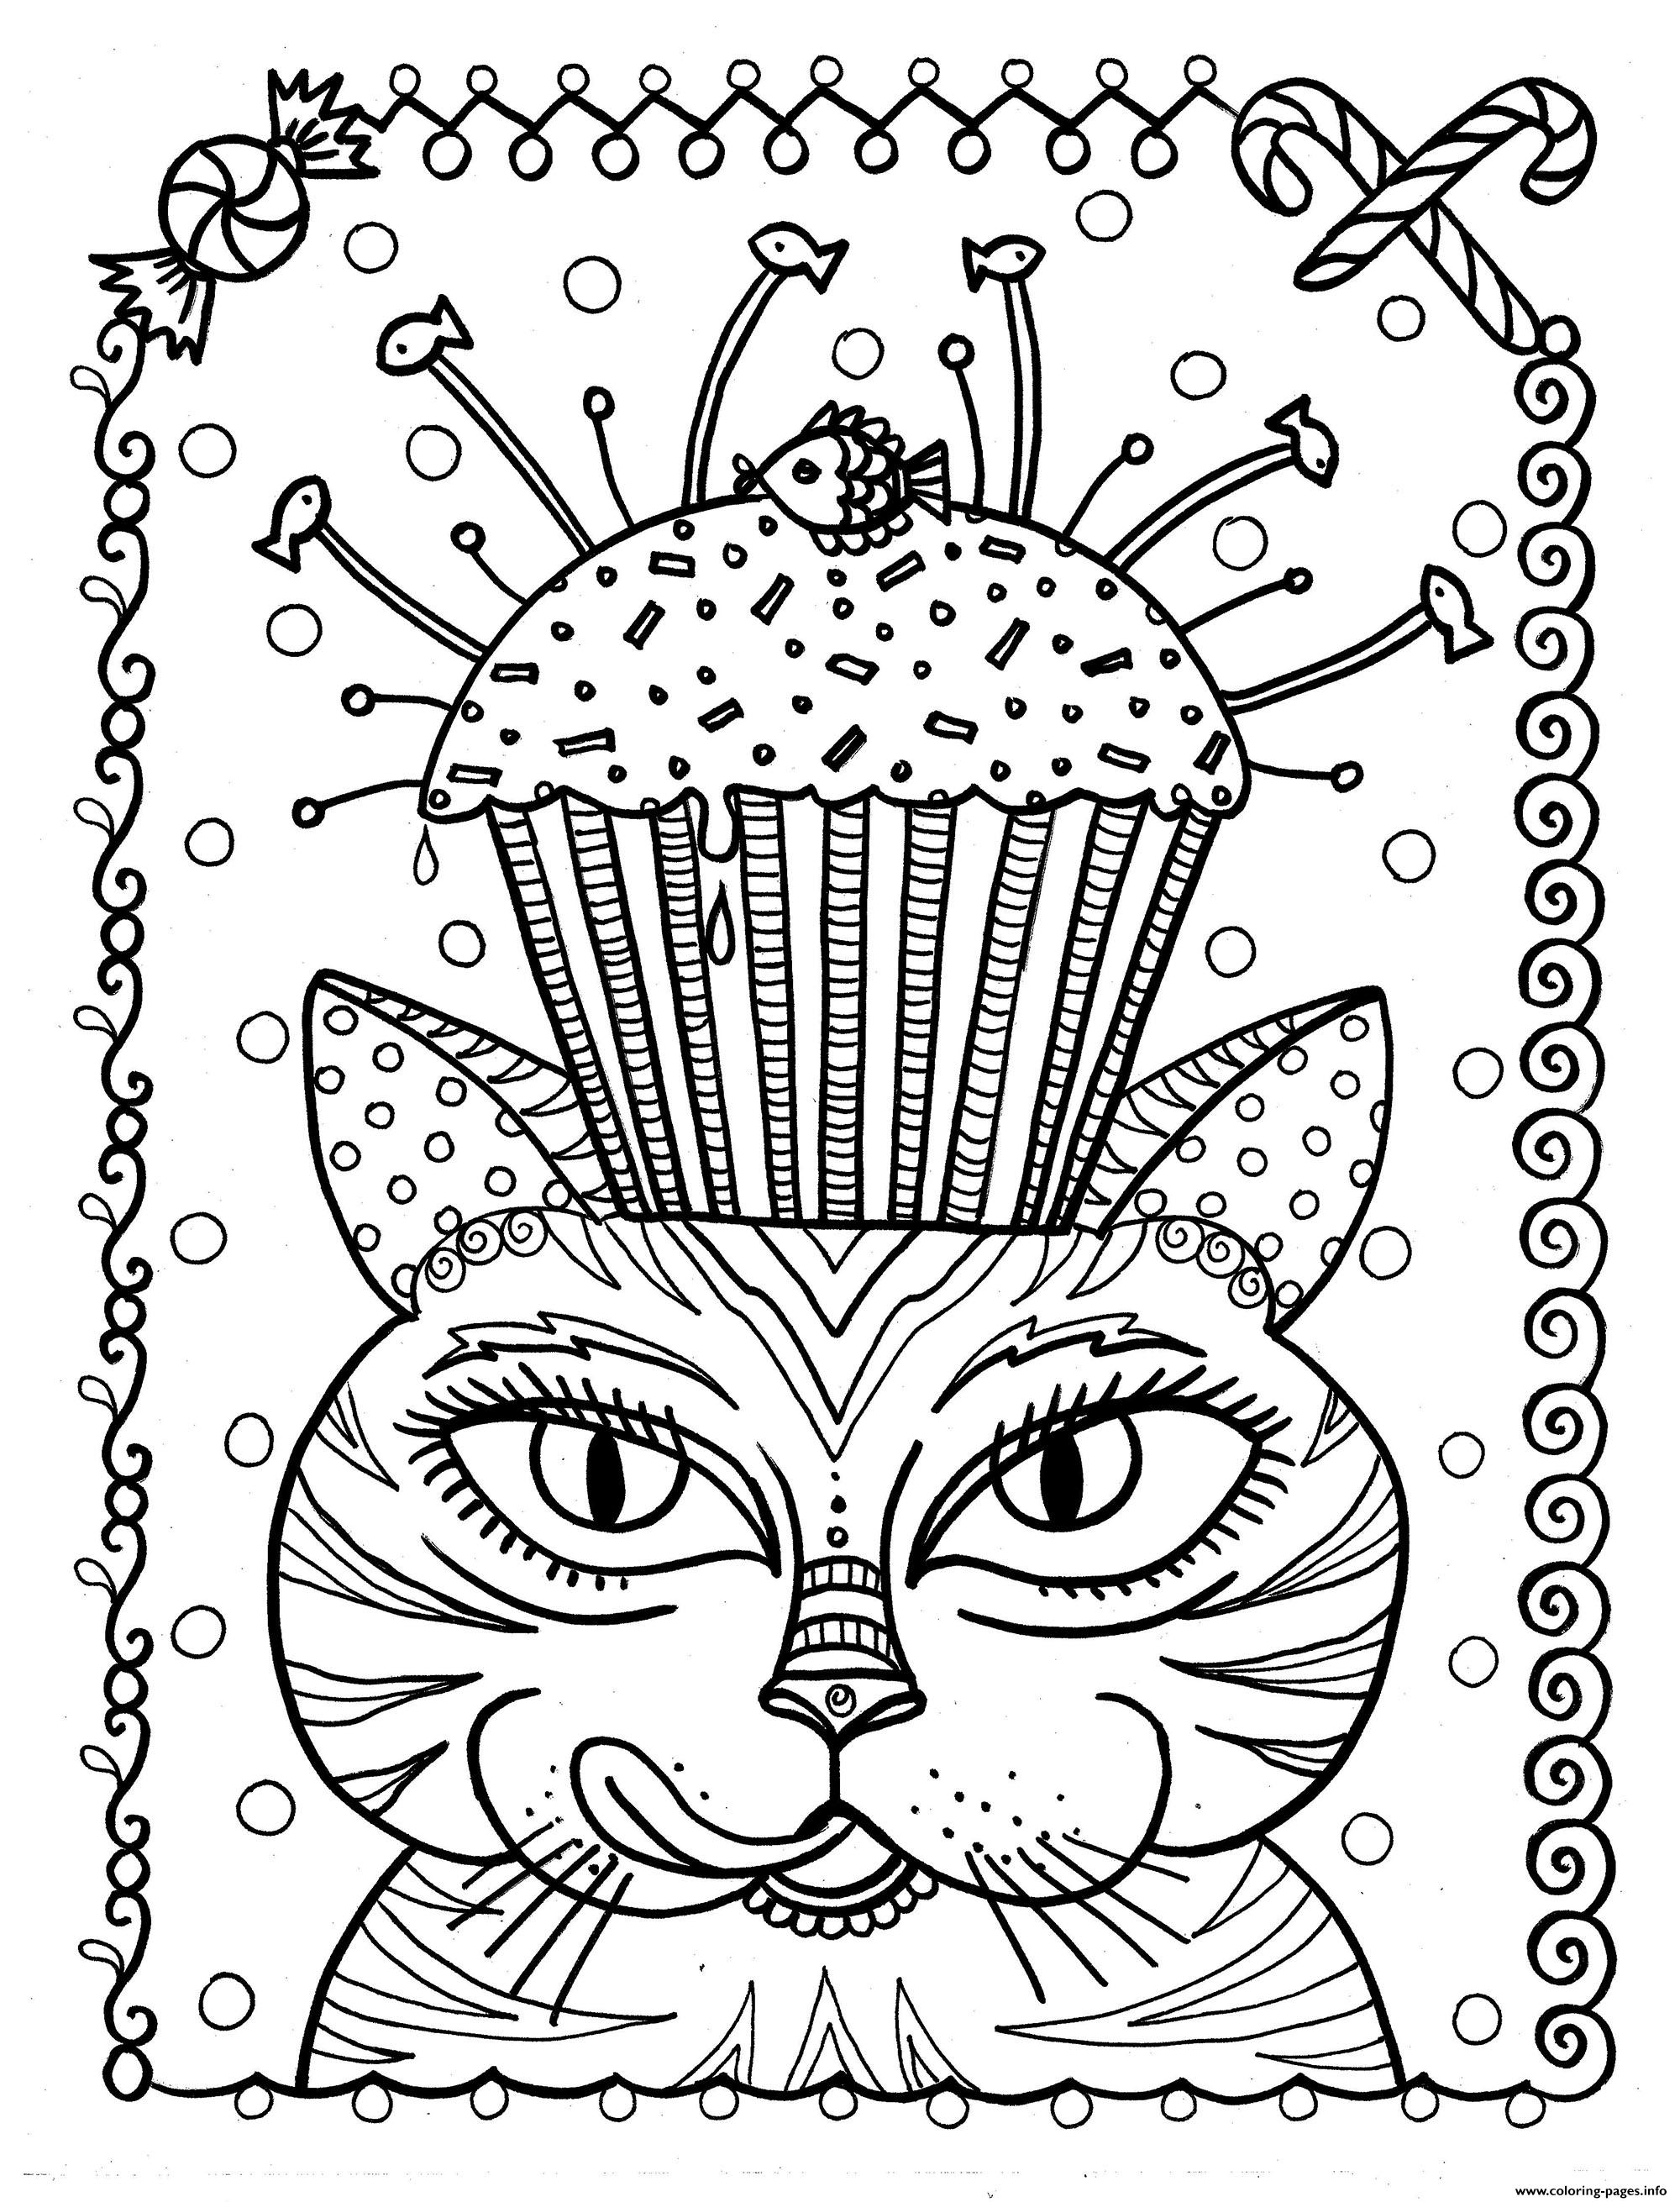 heart cake coloring pages gardens beautiful and coloring on pinterest cake heart coloring pages